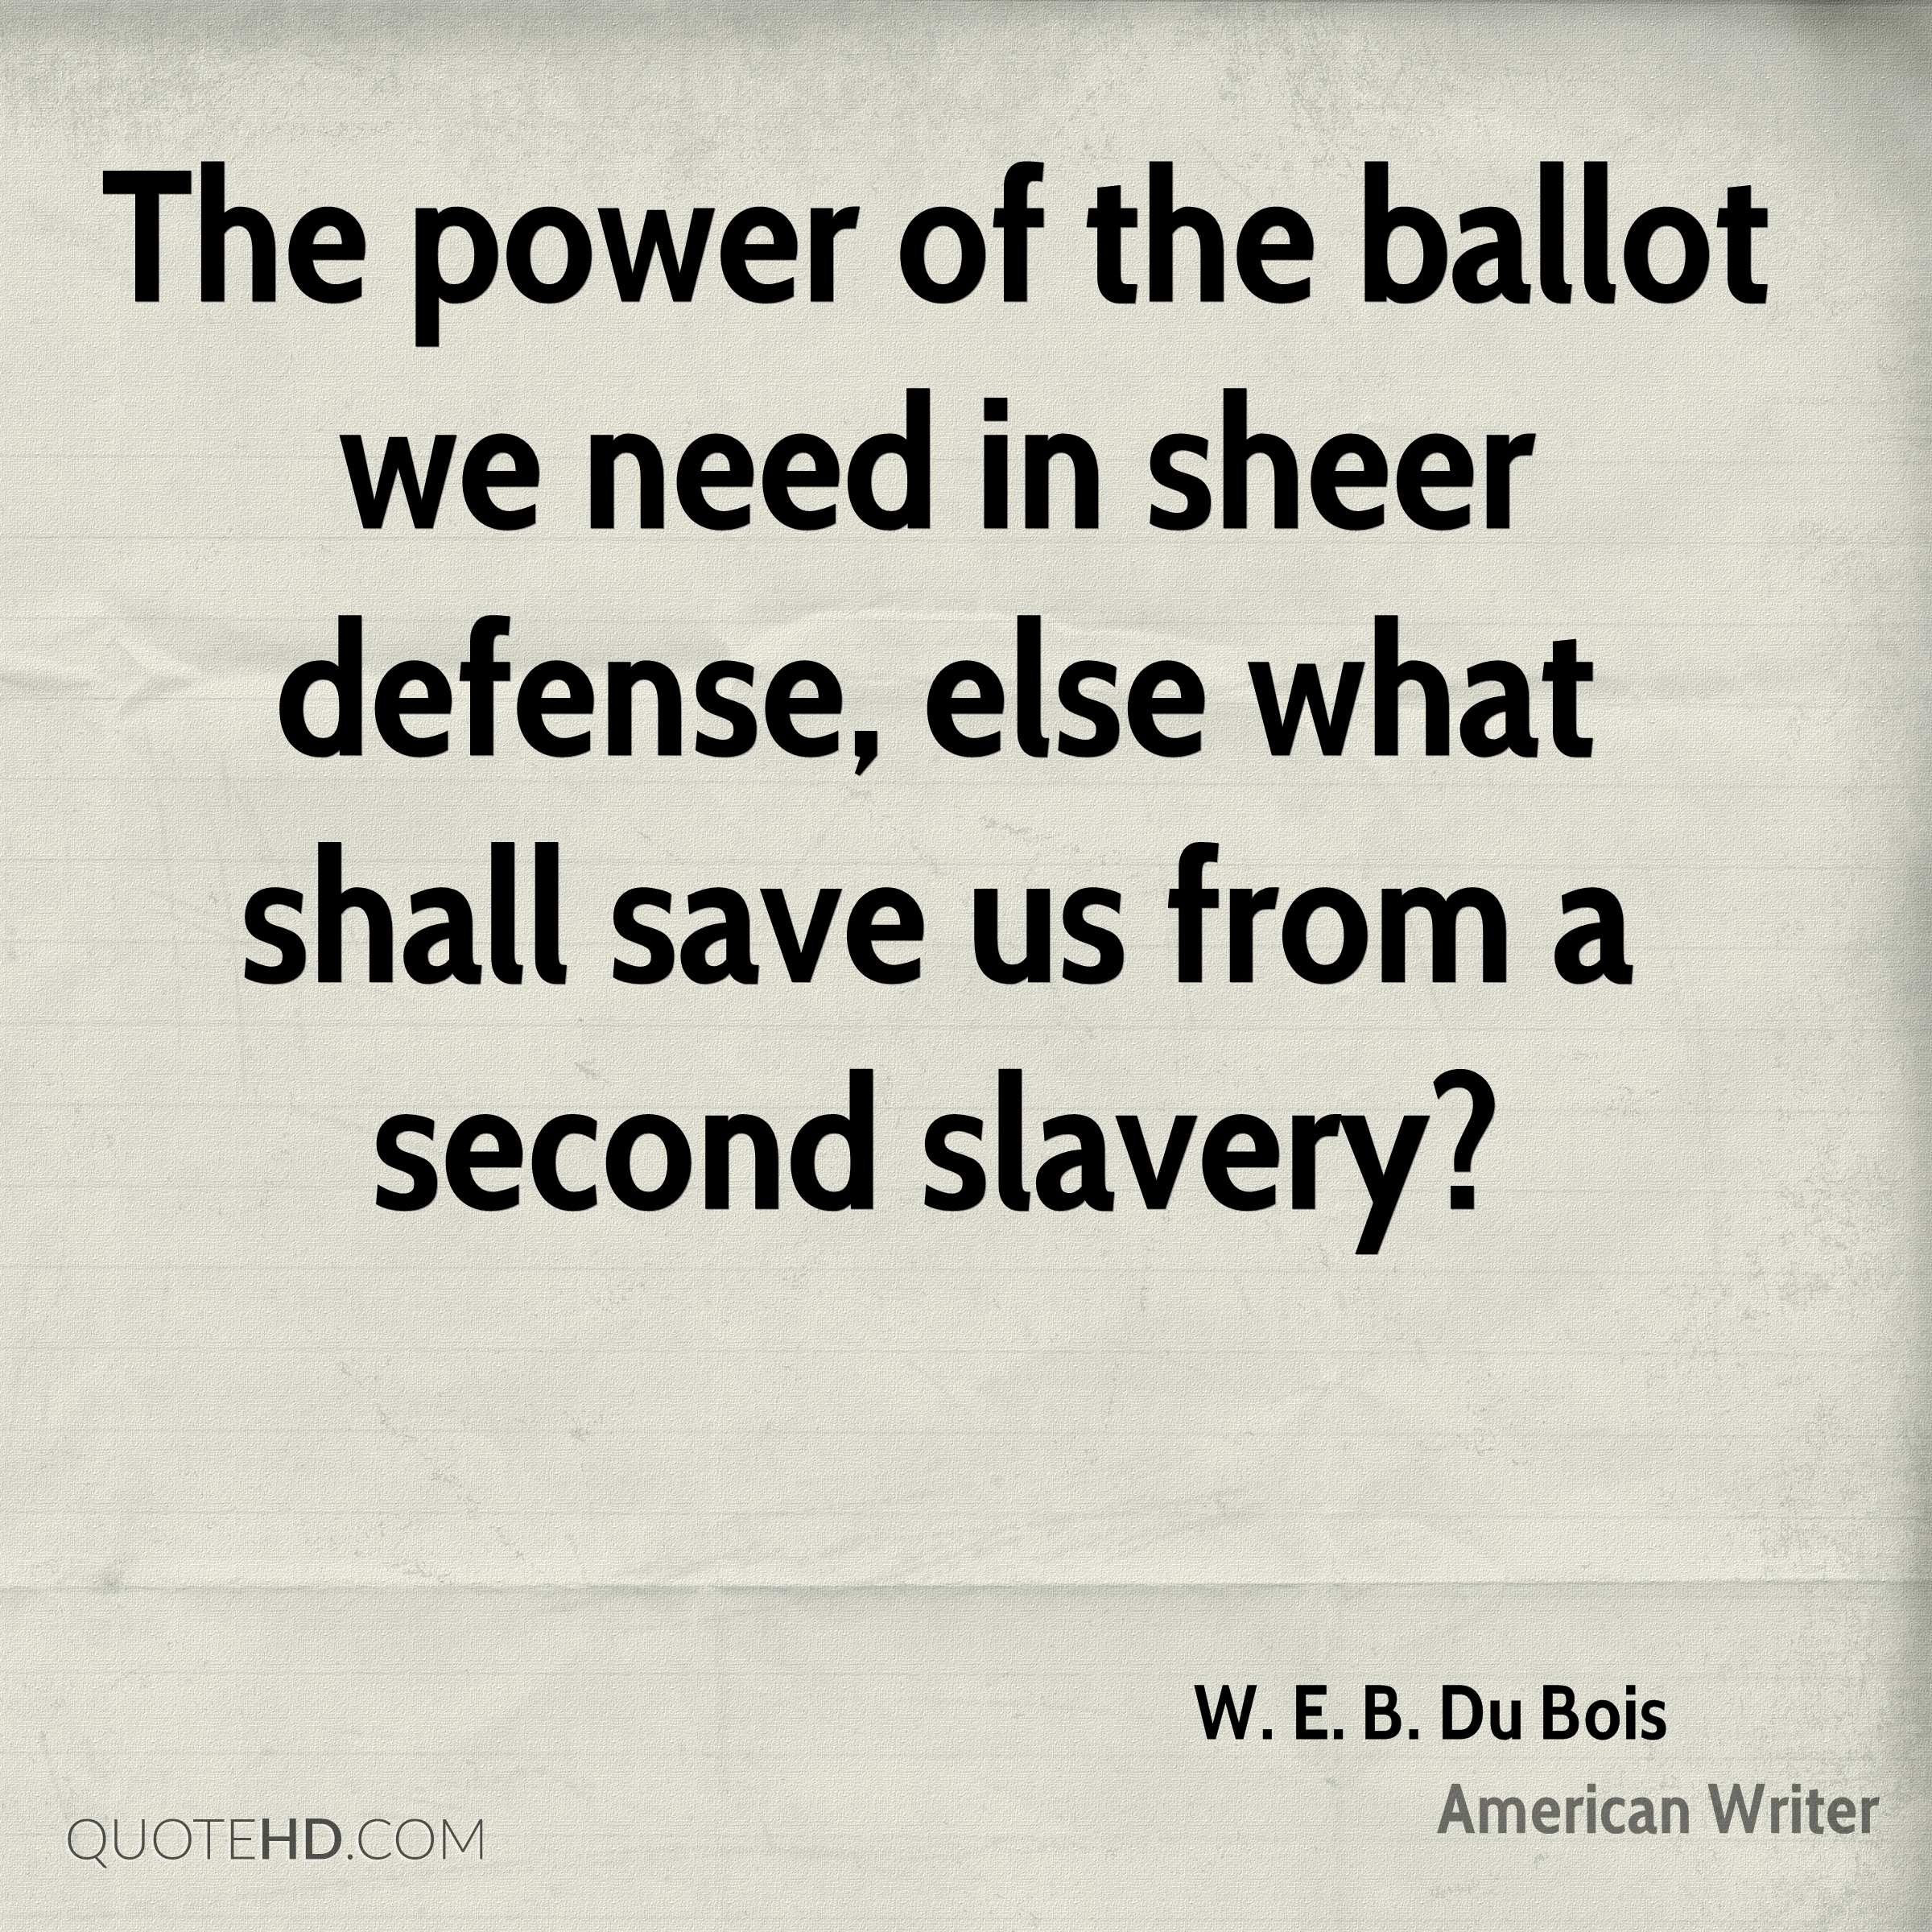 The power of the ballot we need in sheer defense, else what shall save us from a second slavery?